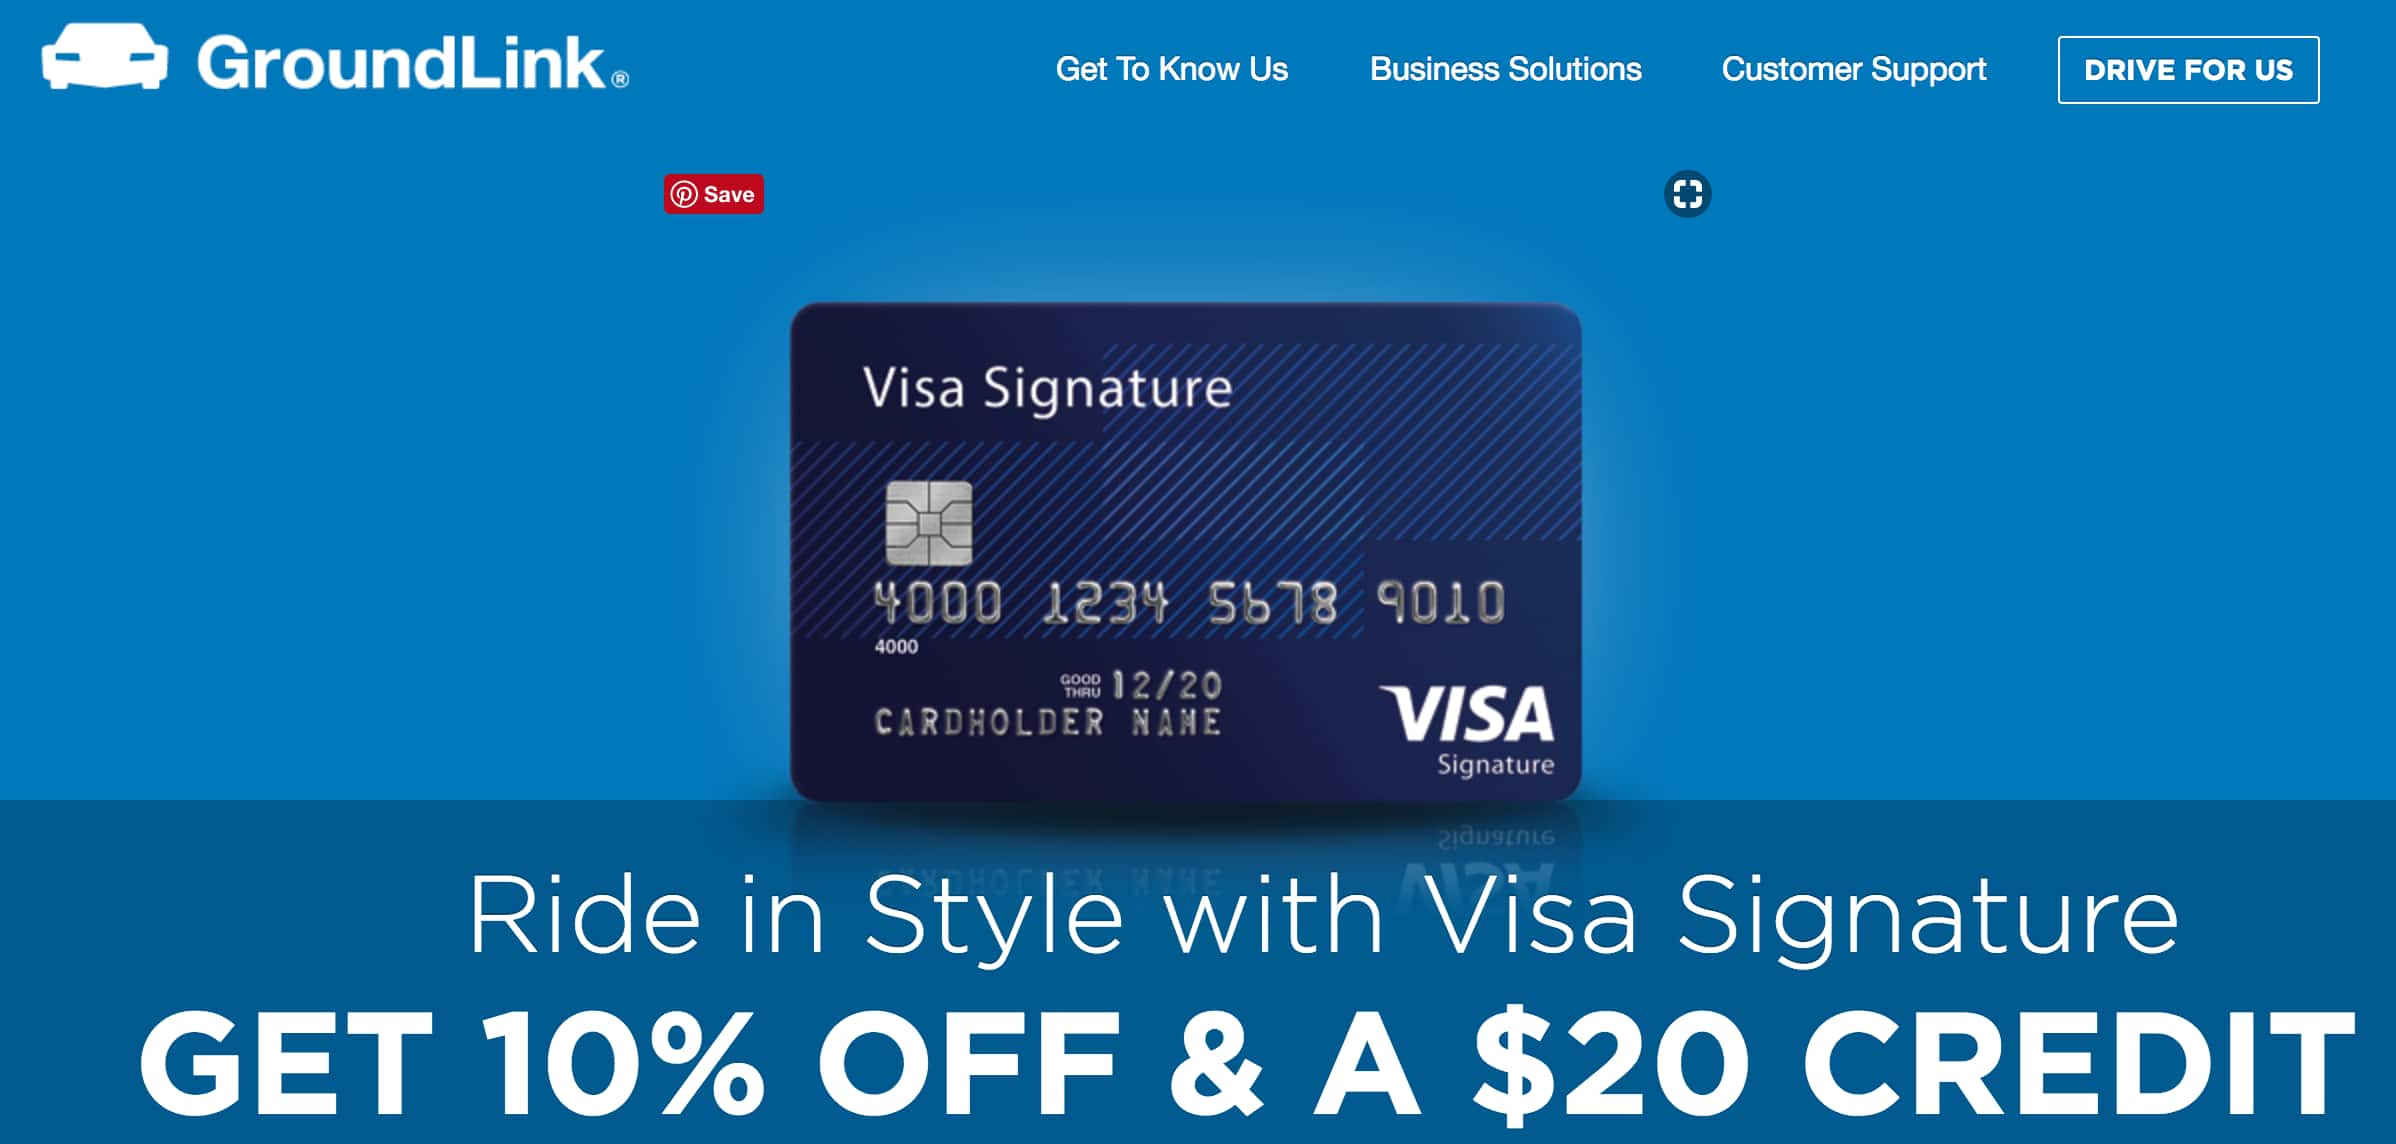 Visa credit cards offer credits to Grounlink (car/limo service)